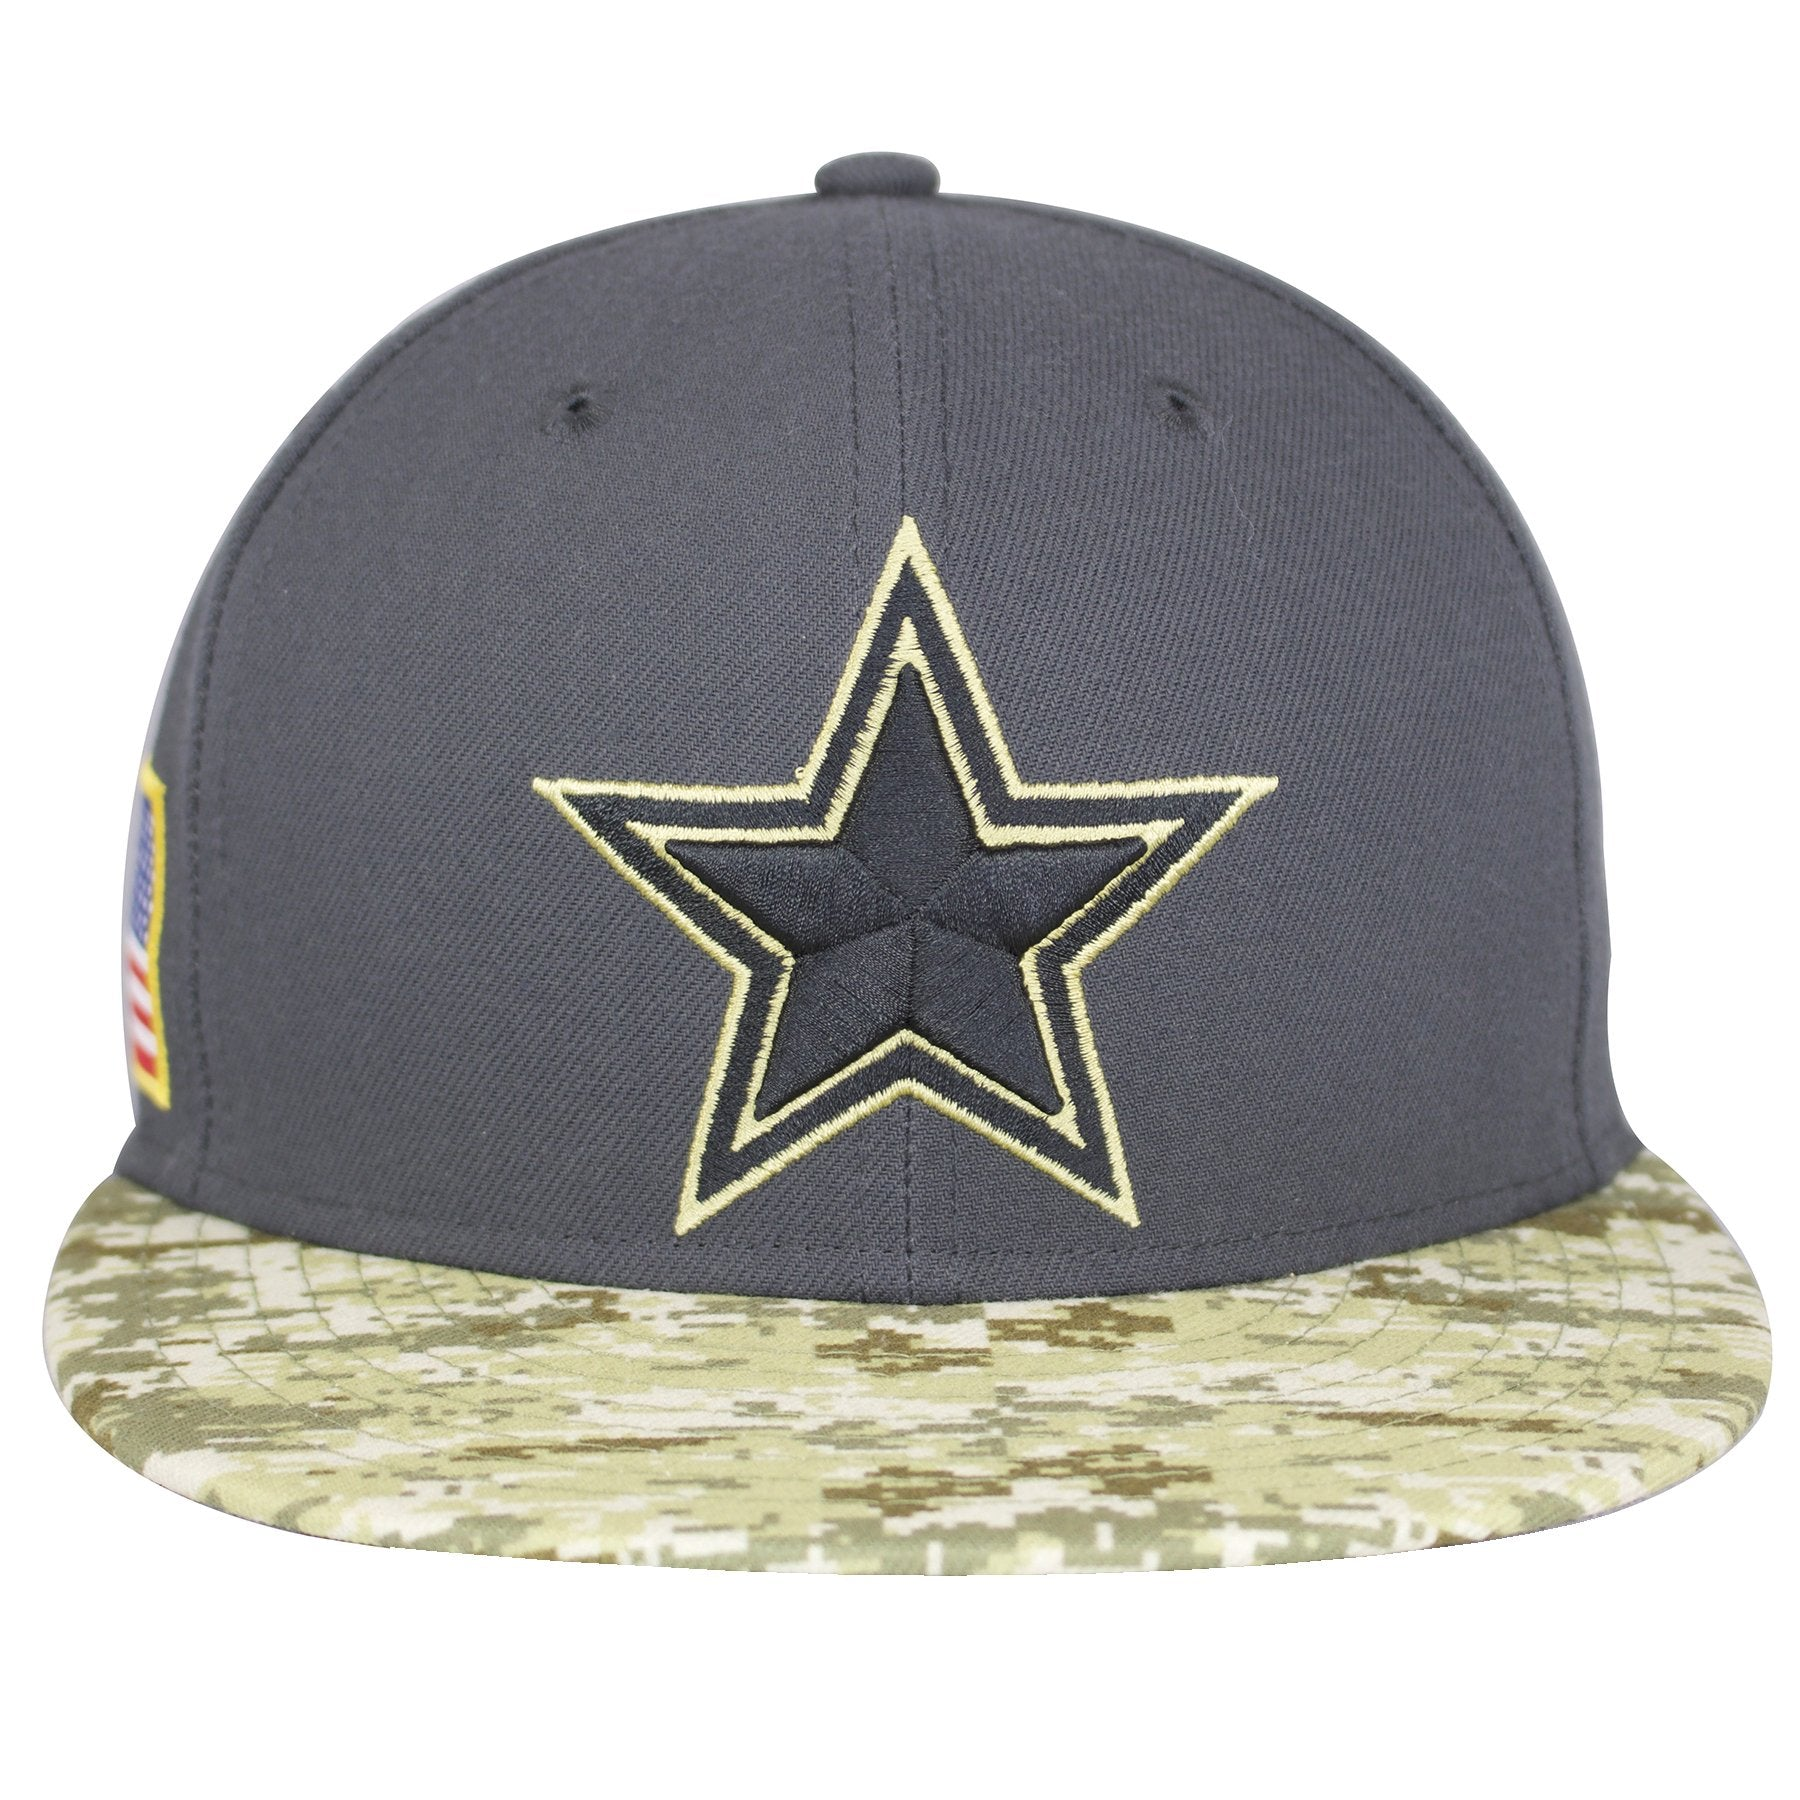 4cbb5267a18 ... canada the dallas cowboys 2016 salute to service fitted cap has a gray  crown and a